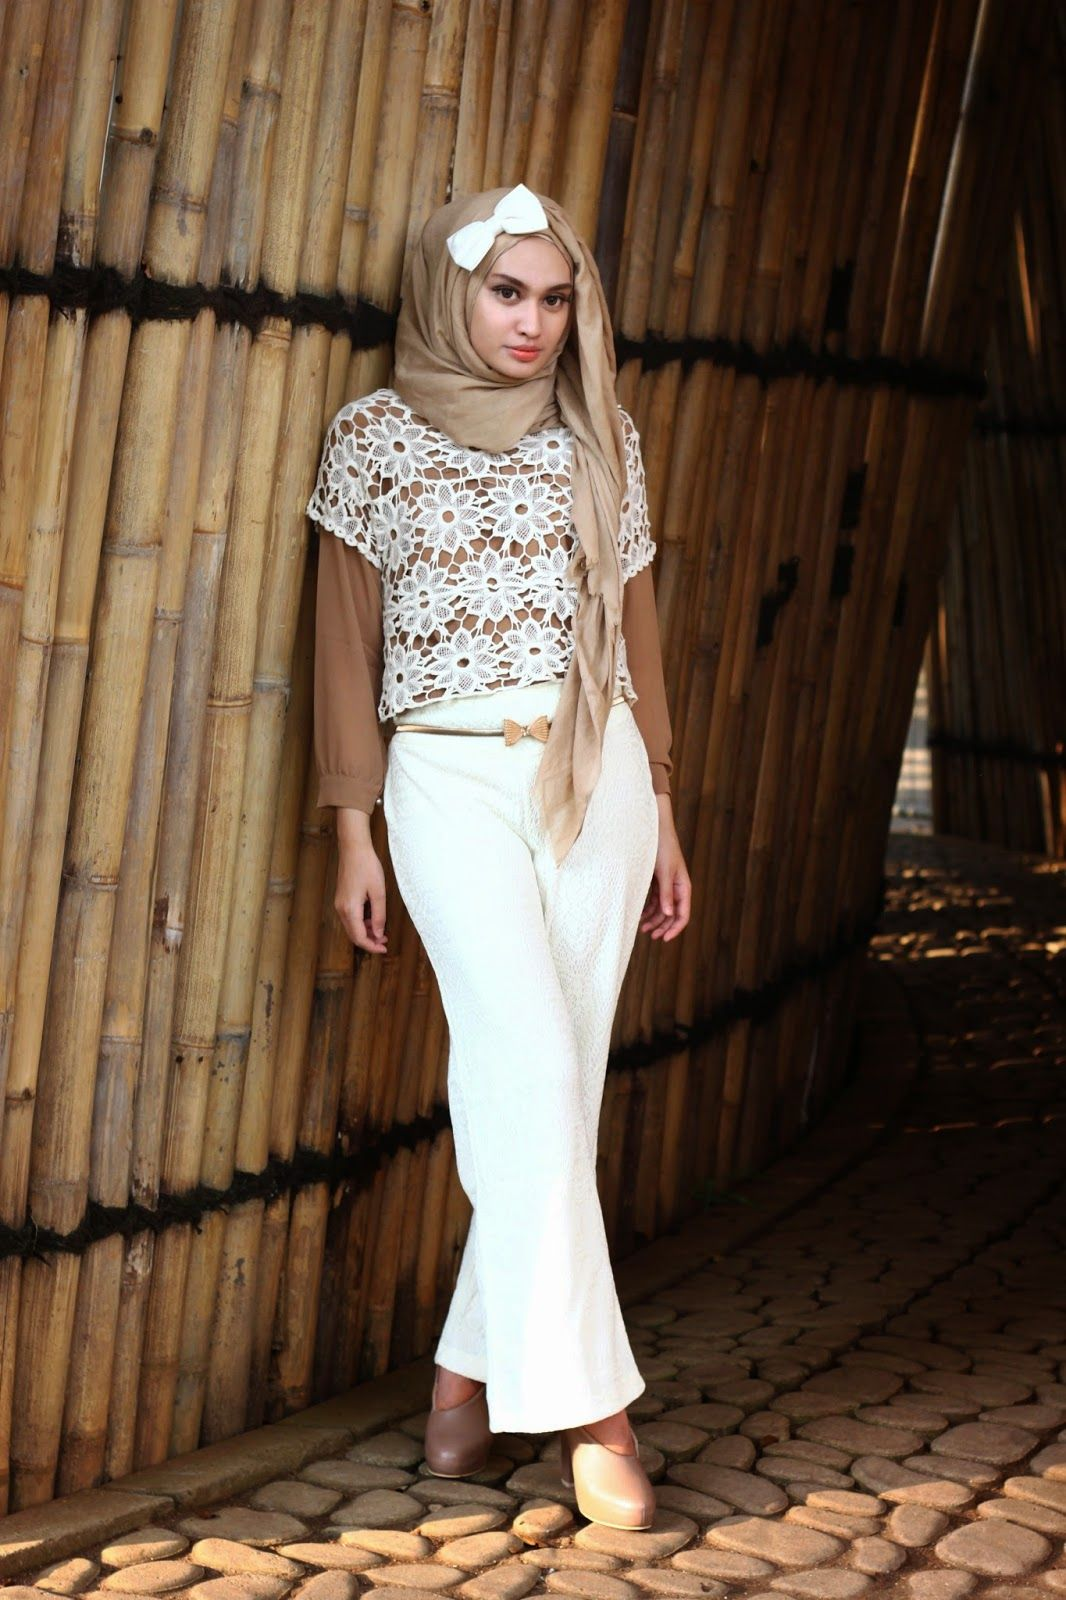 Pin By Hayat On Hijabi Style Pinterest Simple Modern And Blog